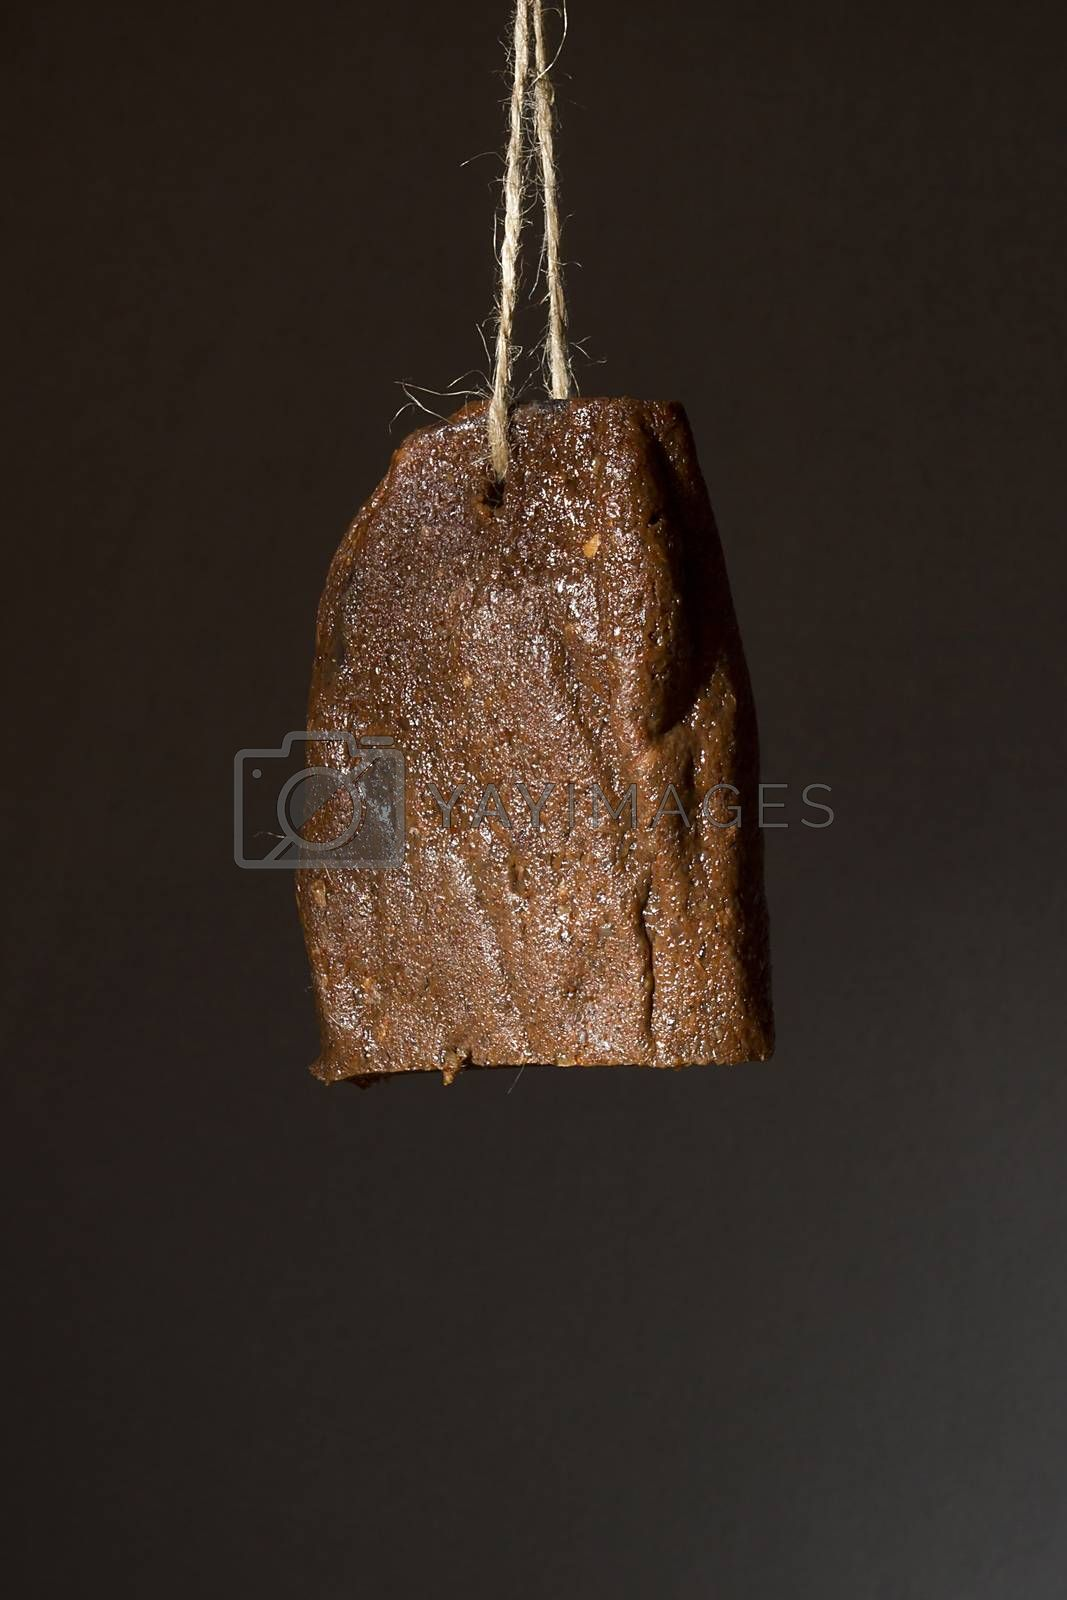 Jerky beef hanging on a rope against a black wall